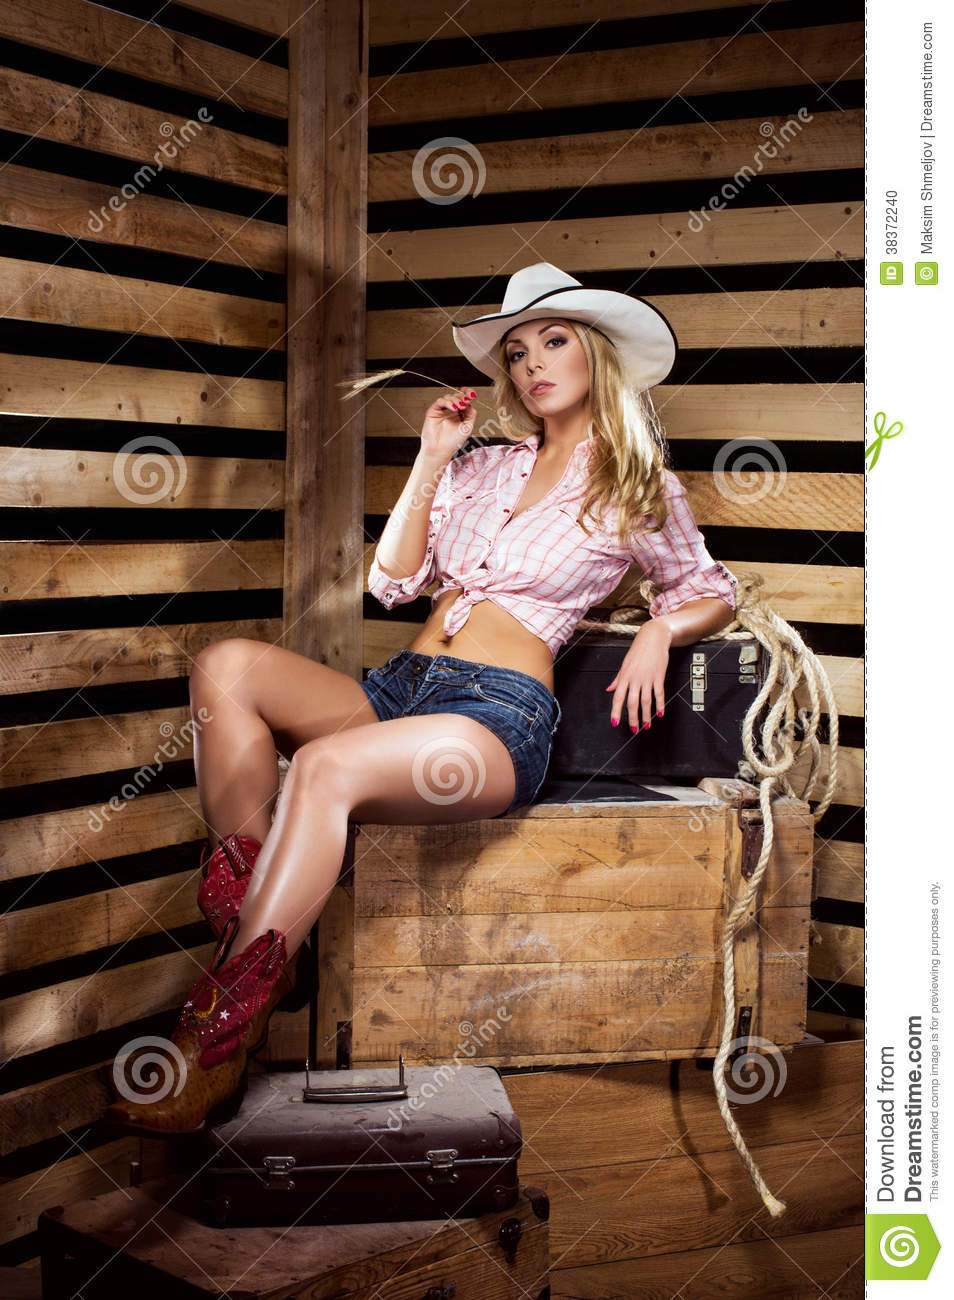 hot women naked cowgirl